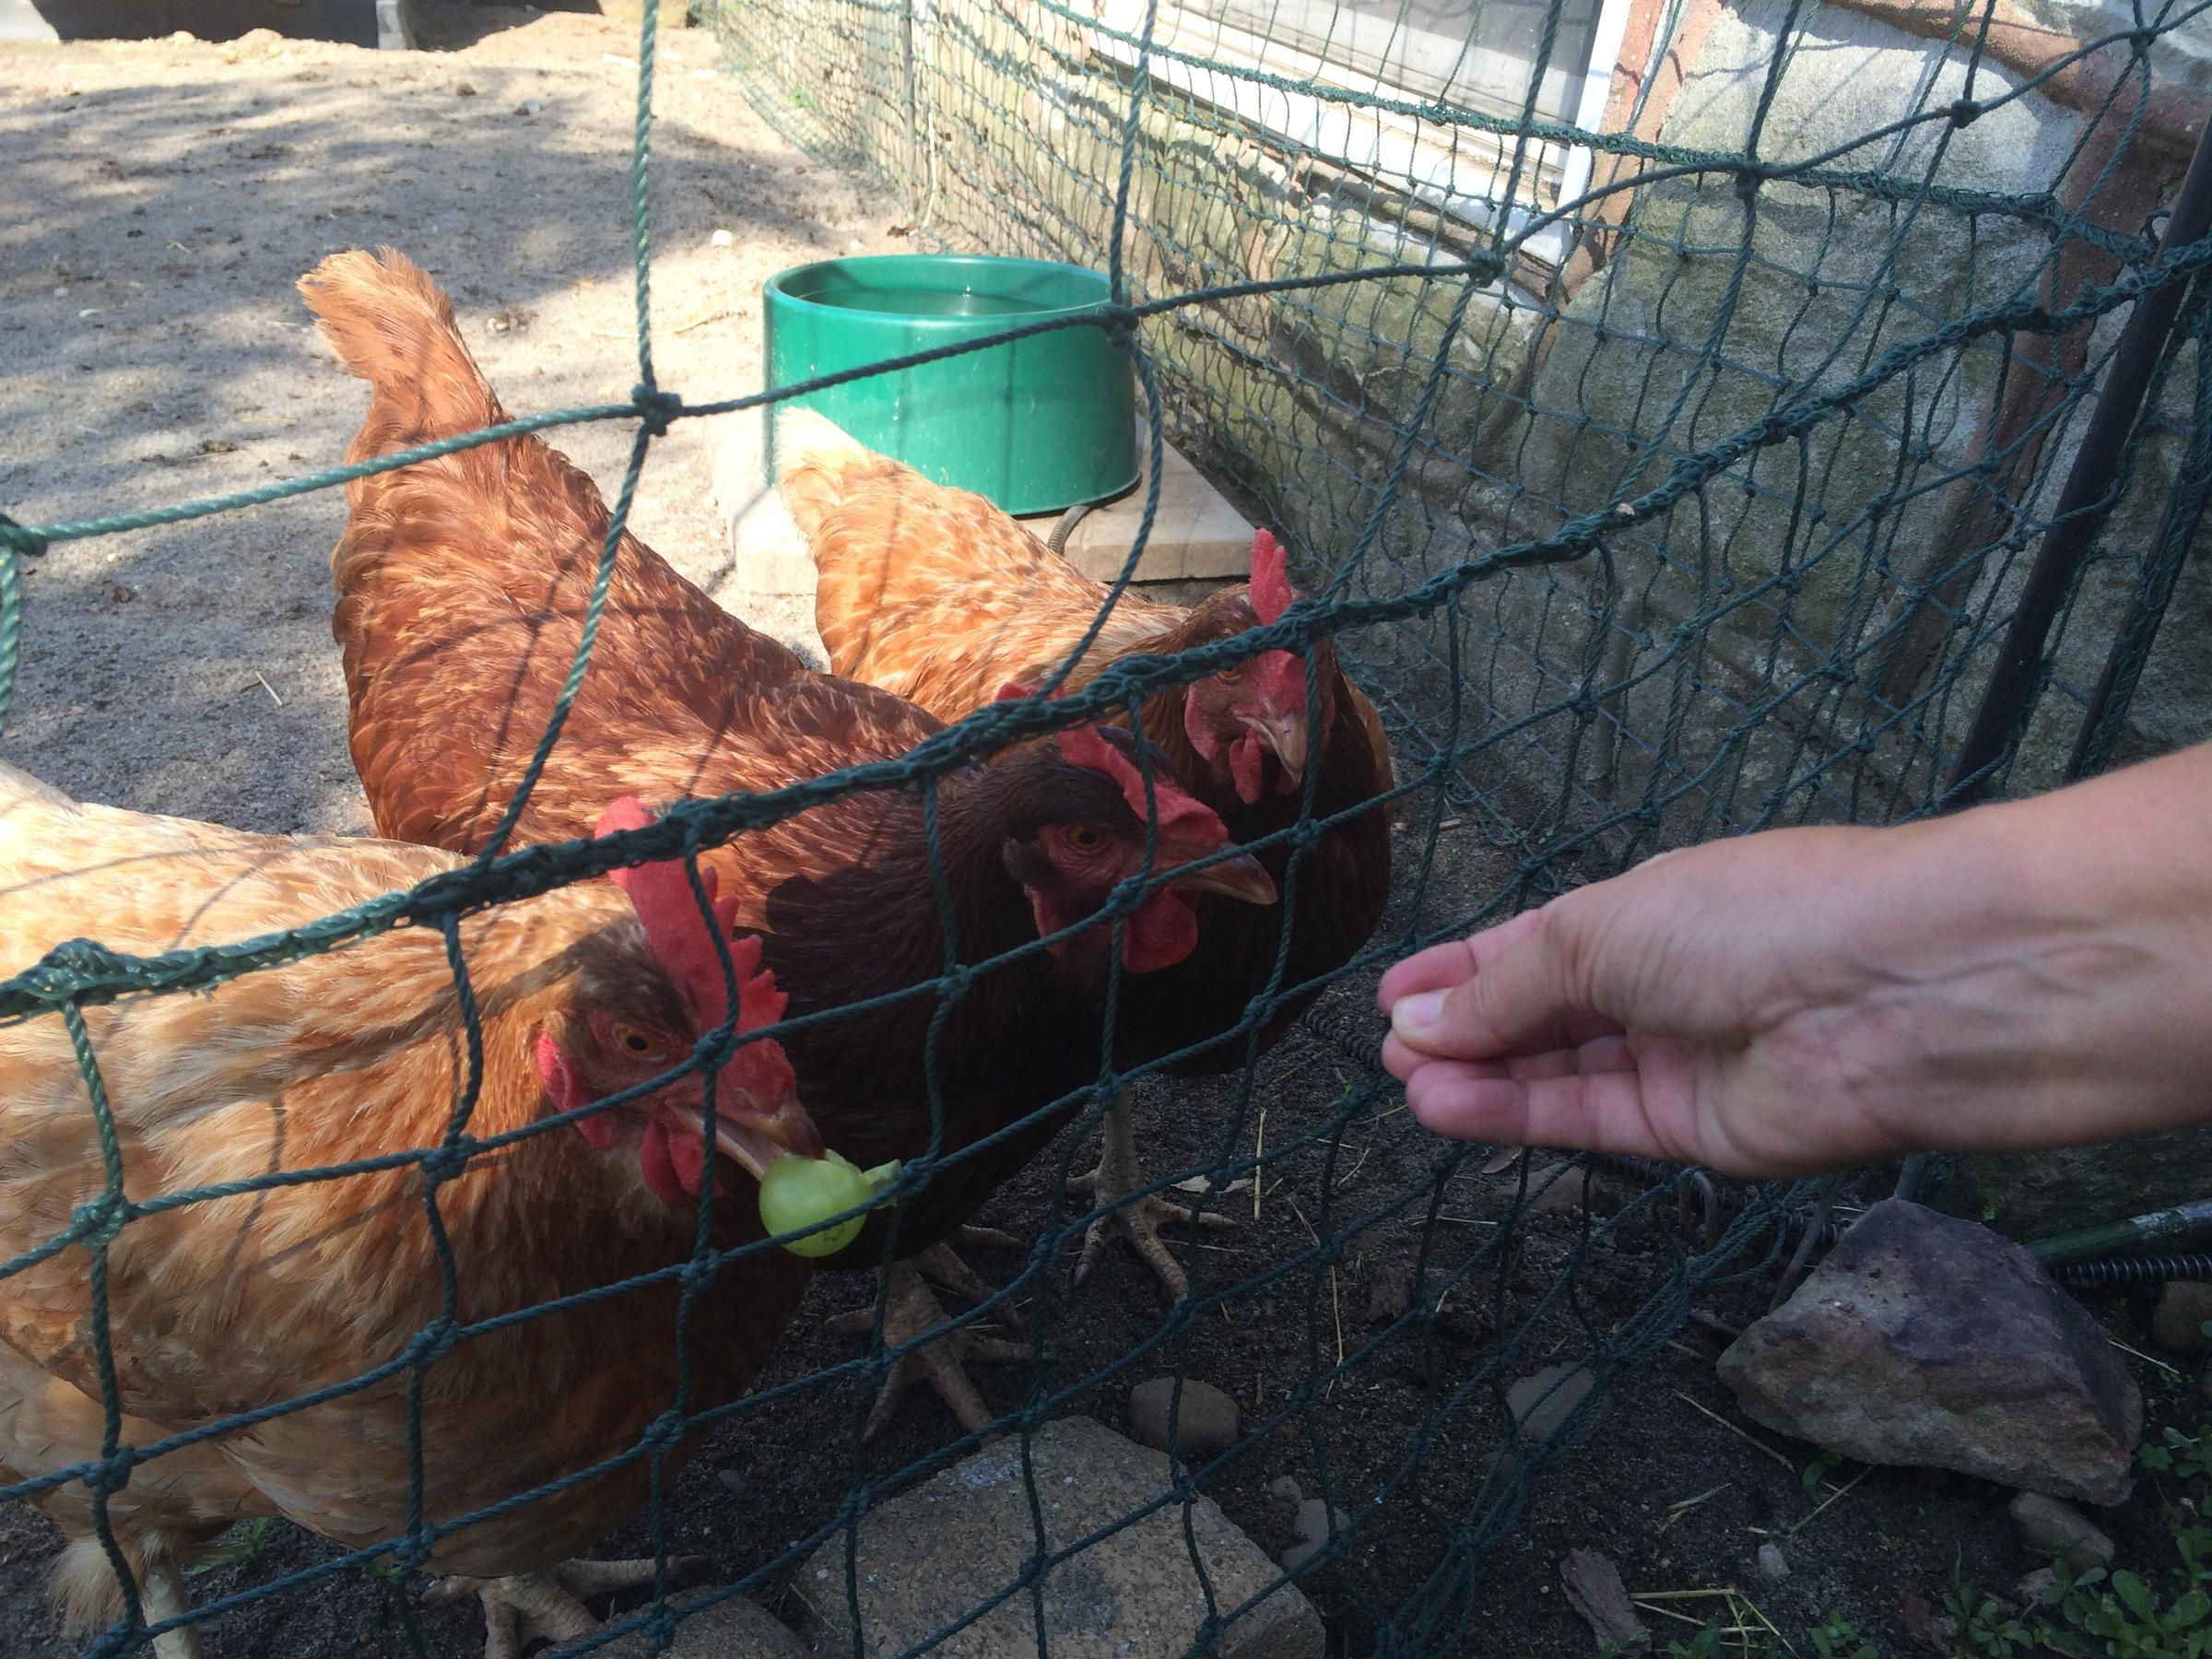 an urban agriculture law ruffles feathers in morgantown west